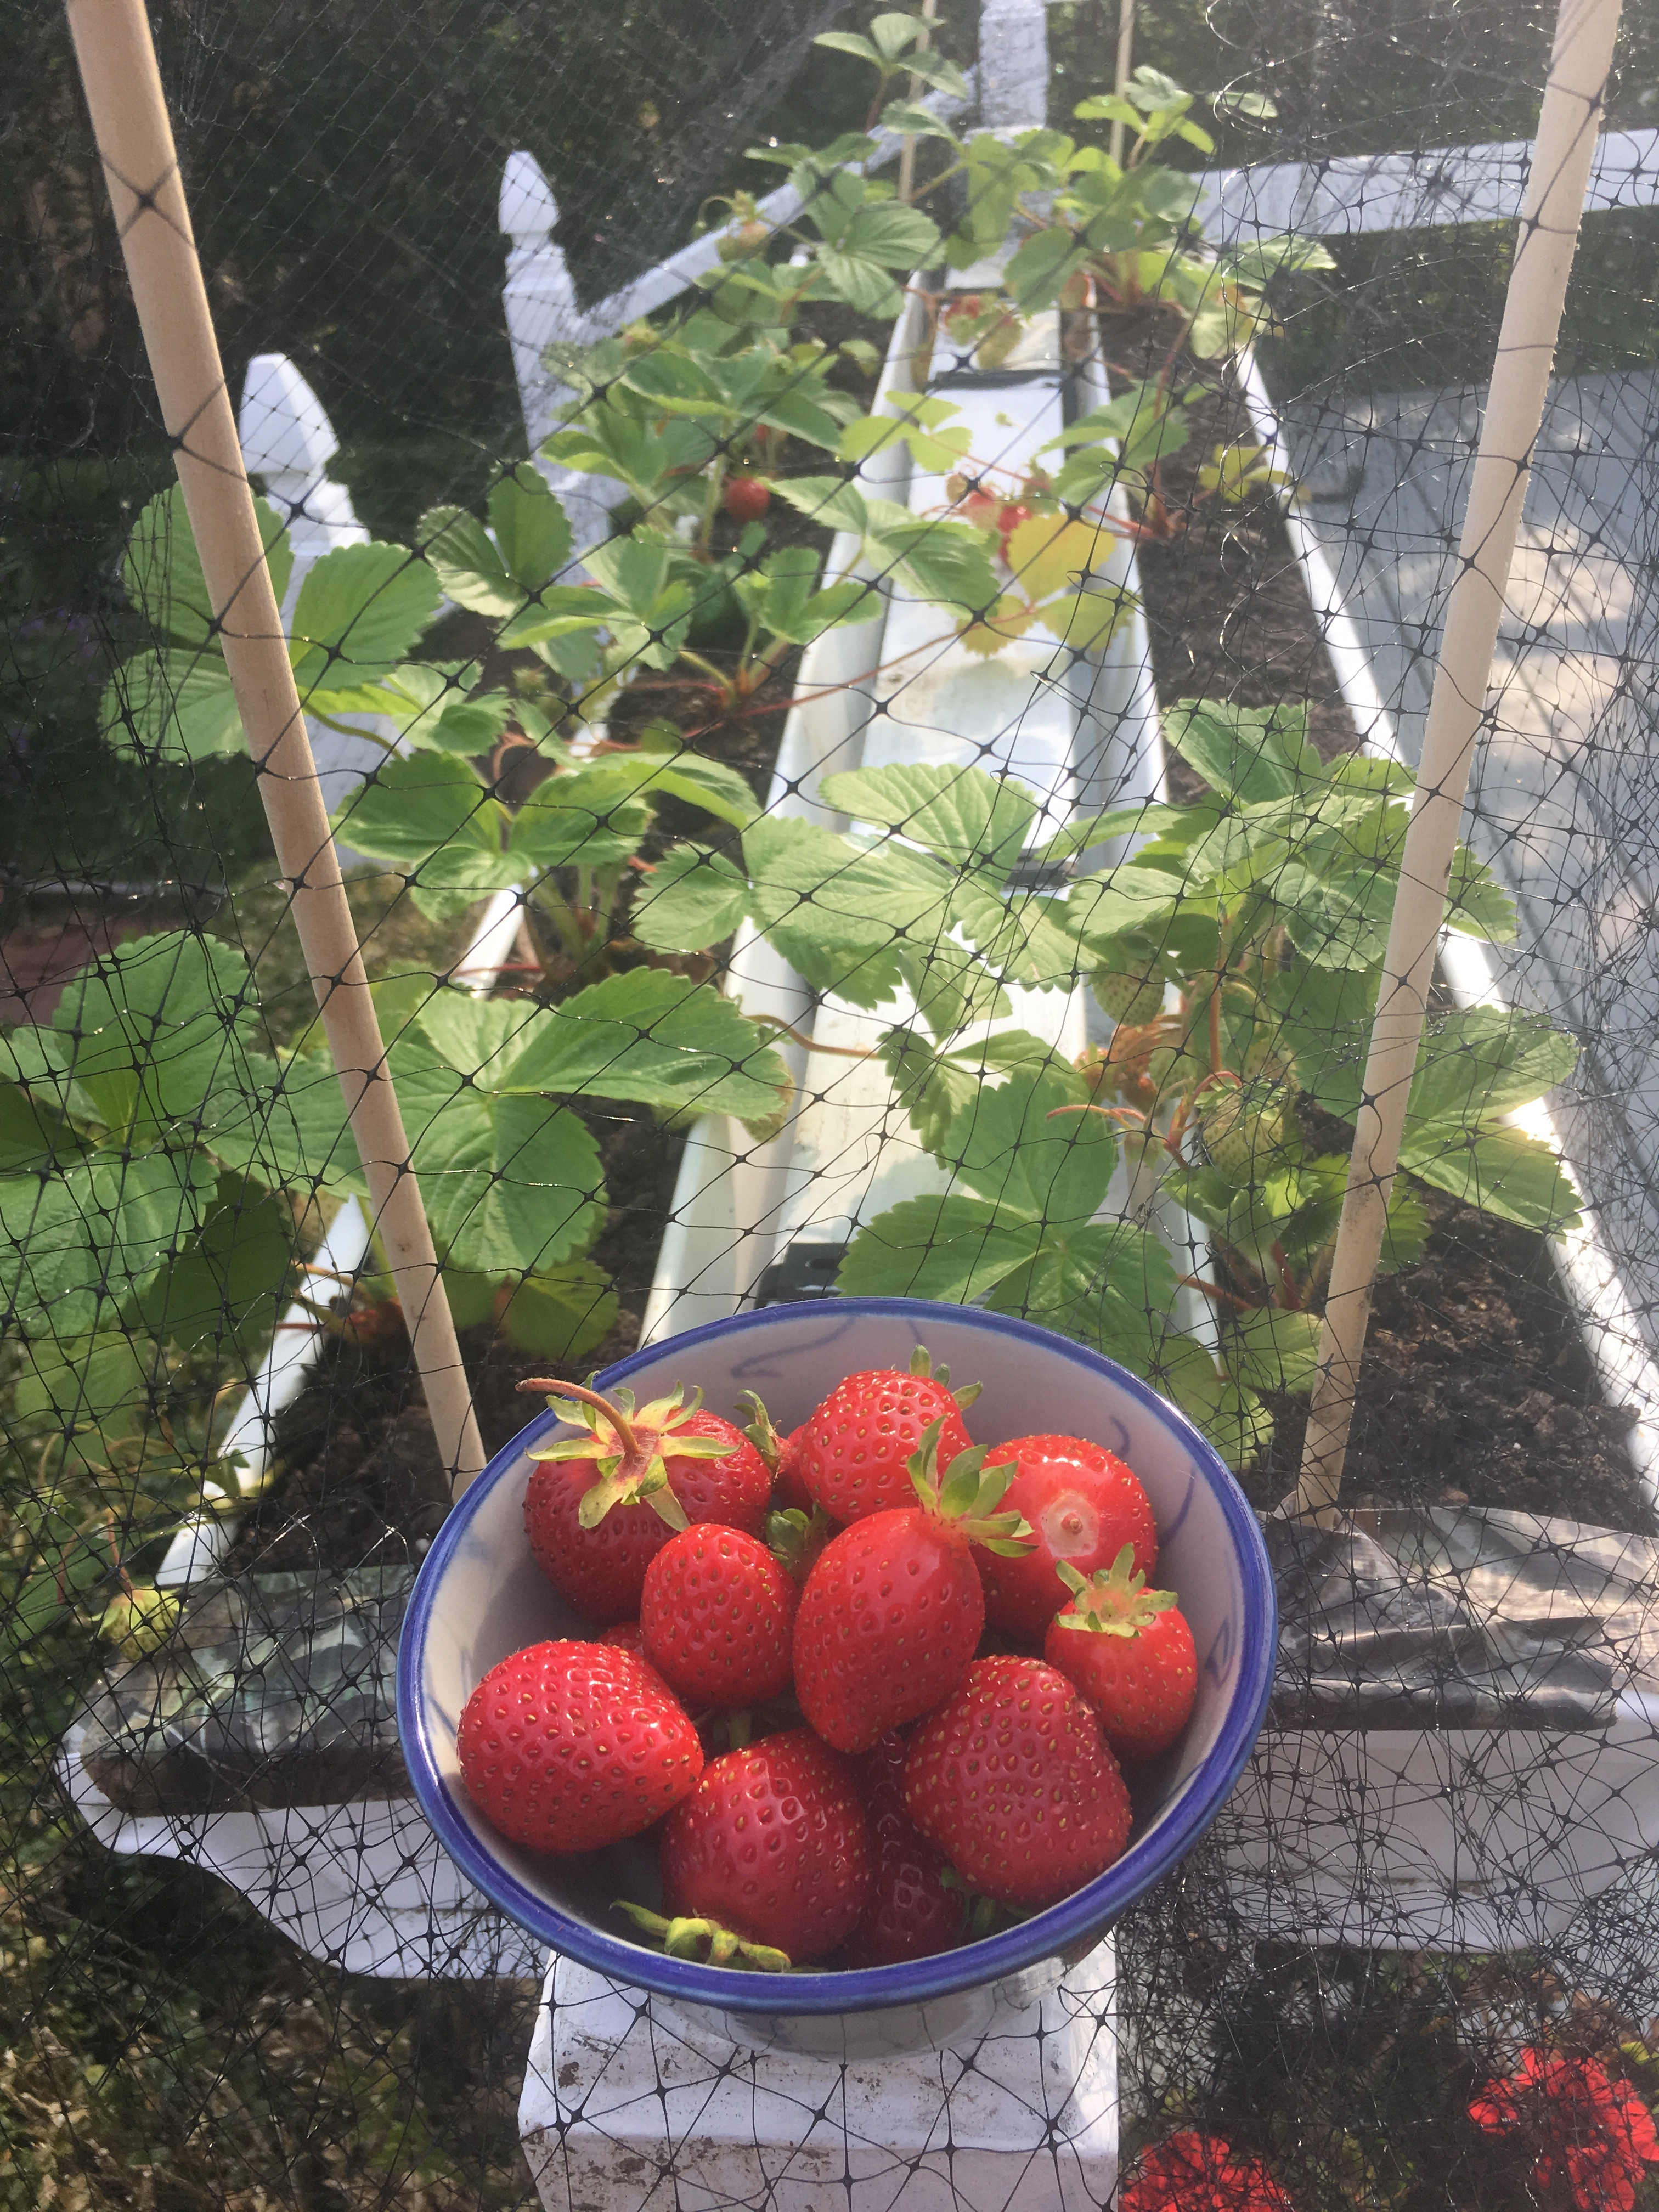 511 Best Container Gardening Ideas Images On Pinterest: Container Size For Strawberries